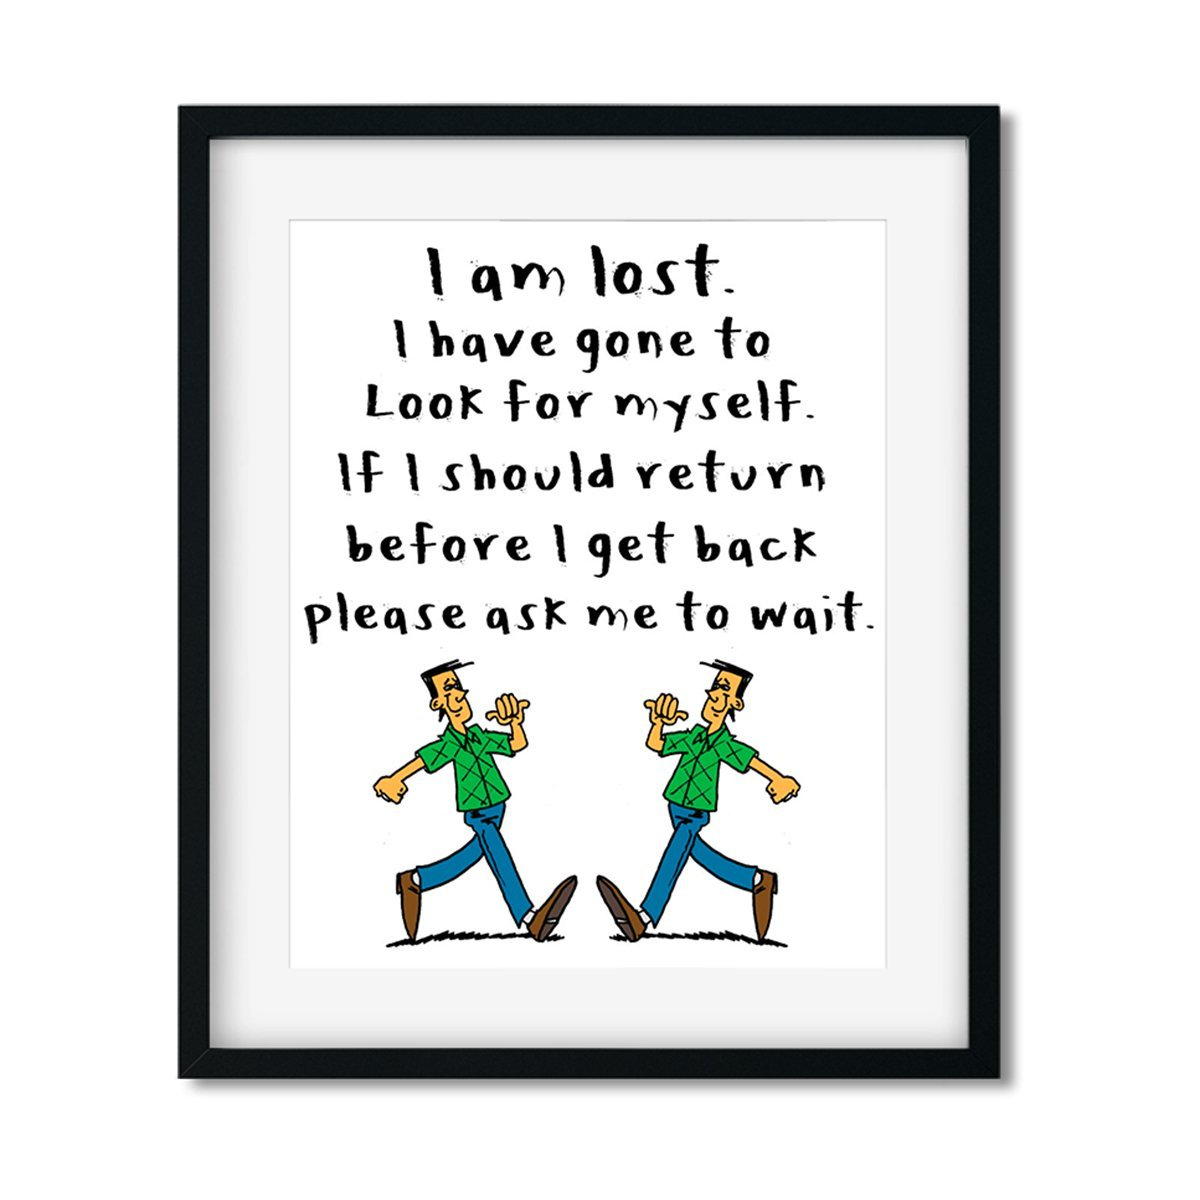 I am lost - Art Print - Netties Expressions